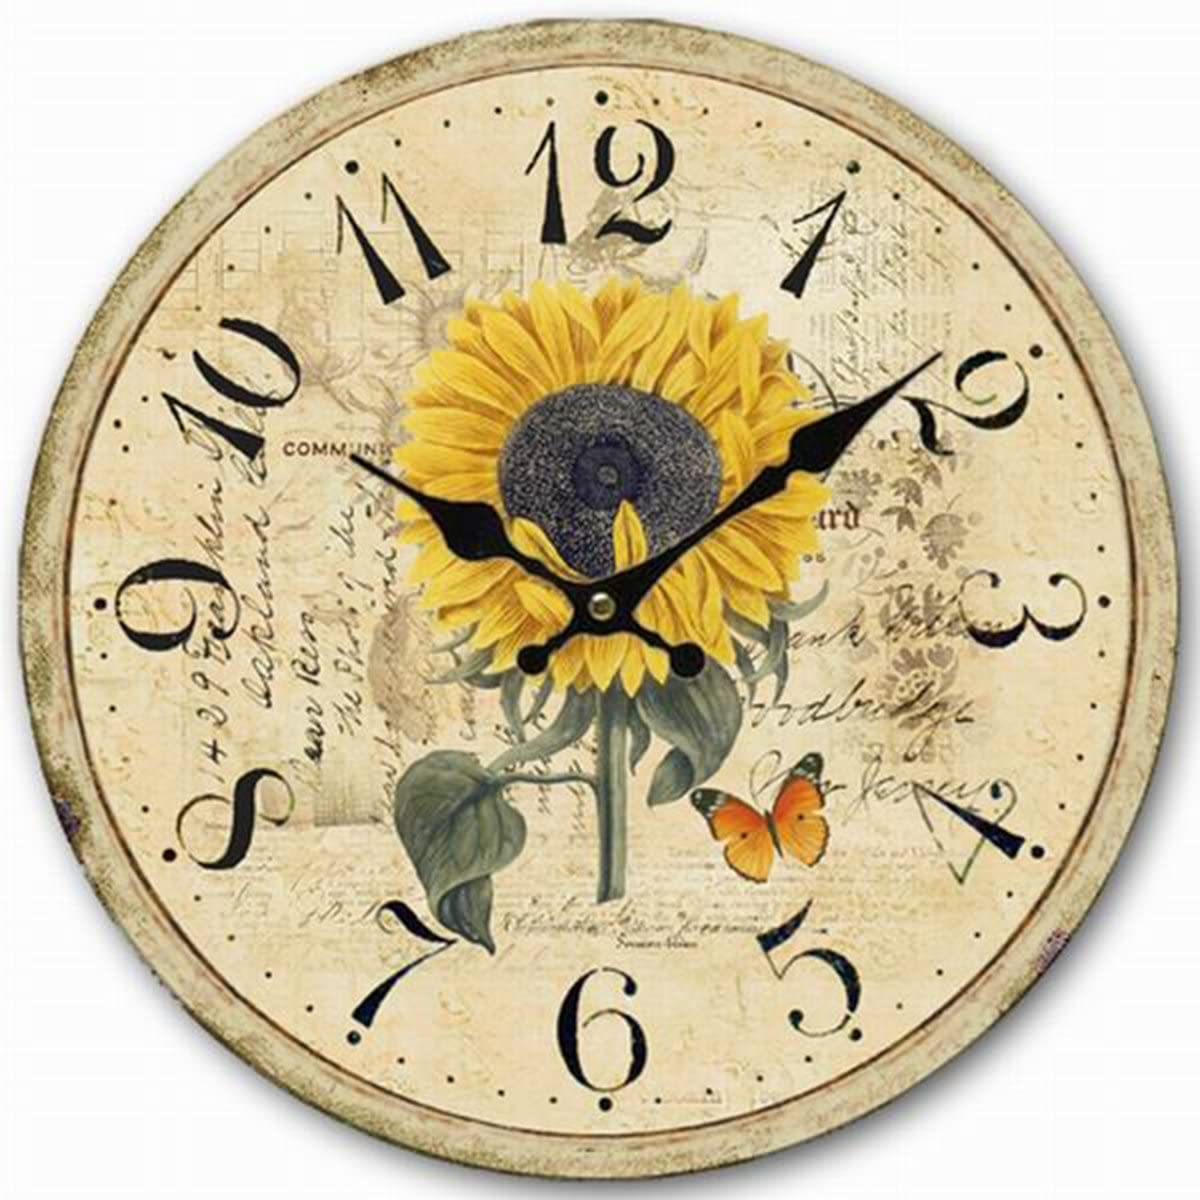 Eruner 12-inch Decorative Clock, Wooden Sunflower Cafe Bar Lancaster Paris Wall Clock Retro Styled Non-Ticking Home Decor HQ5